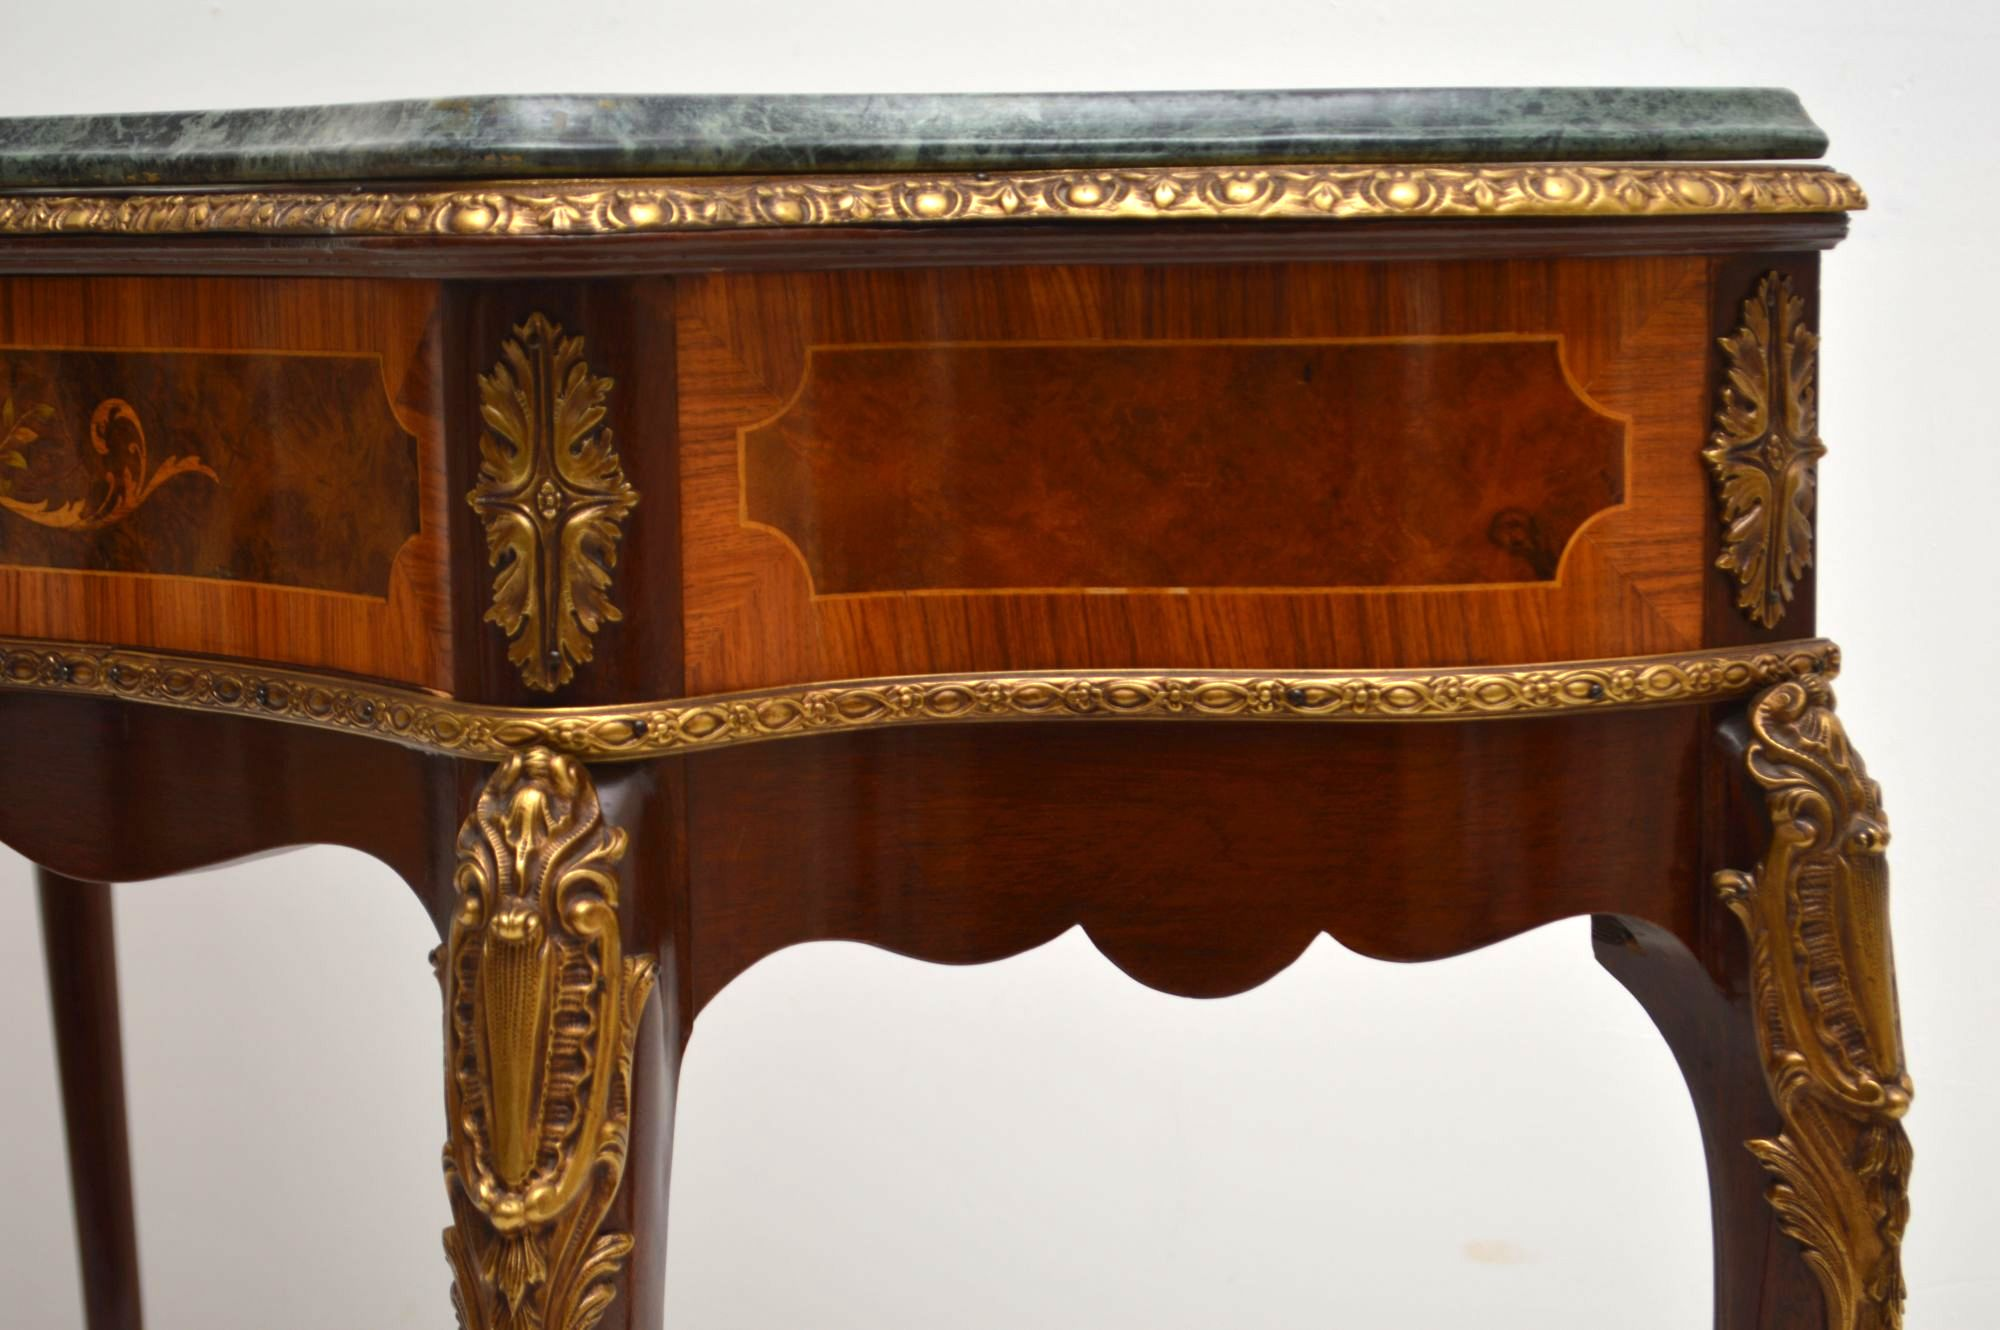 Antique French Marble Top Ormolu Mounted Console Table